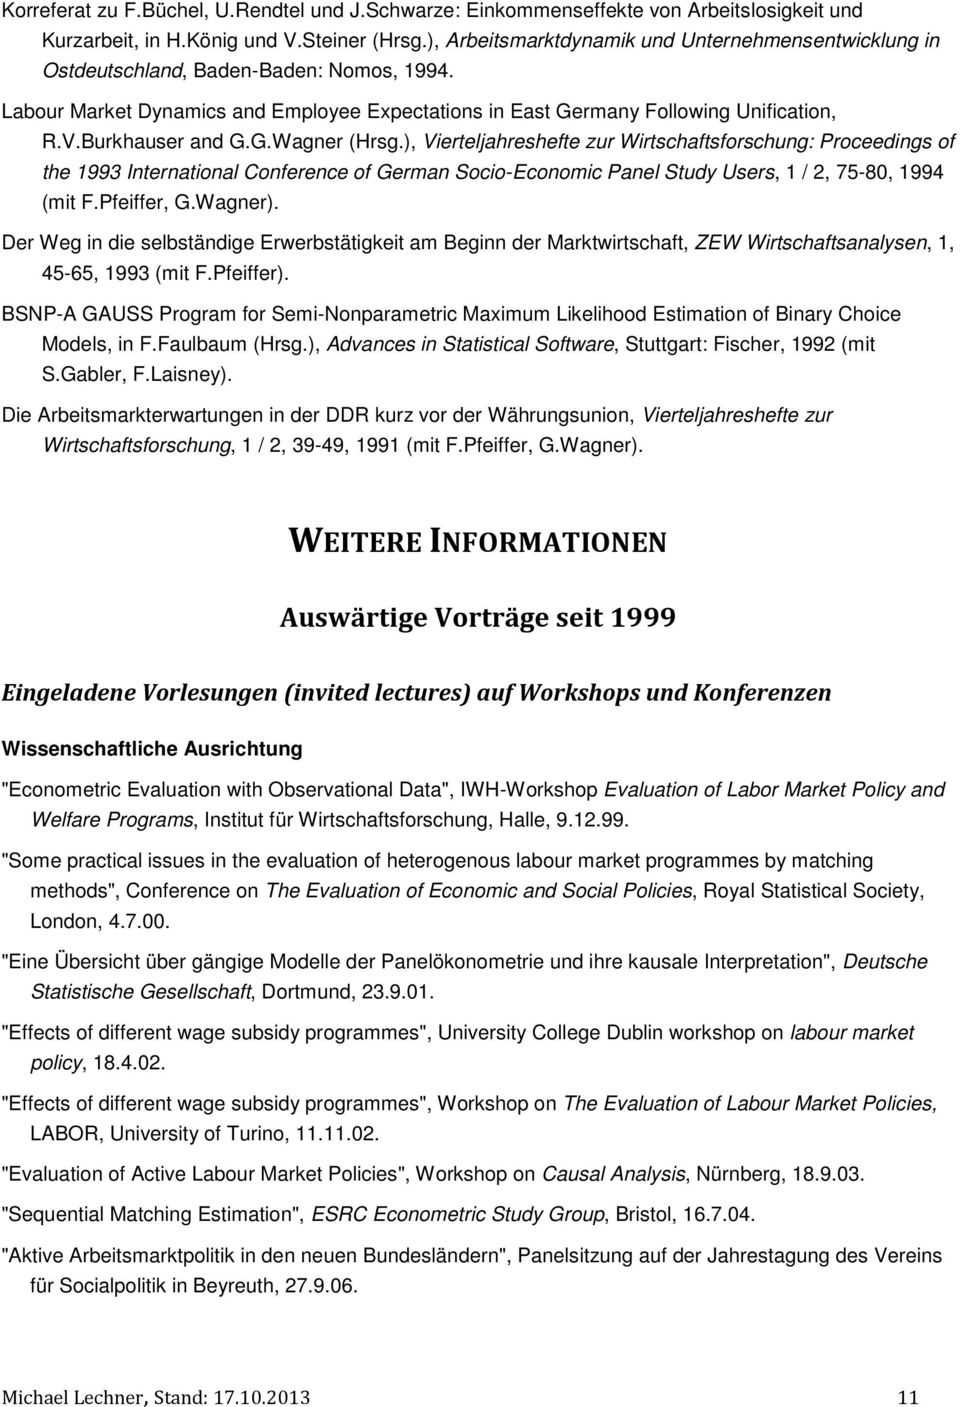 Burkhauser and G.G.Wagner (Hrsg.), Vierteljahreshefte zur Wirtschaftsforschung: Proceedings of the 1993 International Conference of German Socio-Economic Panel Study Users, 1 / 2, 75-80, 1994 (mit F.